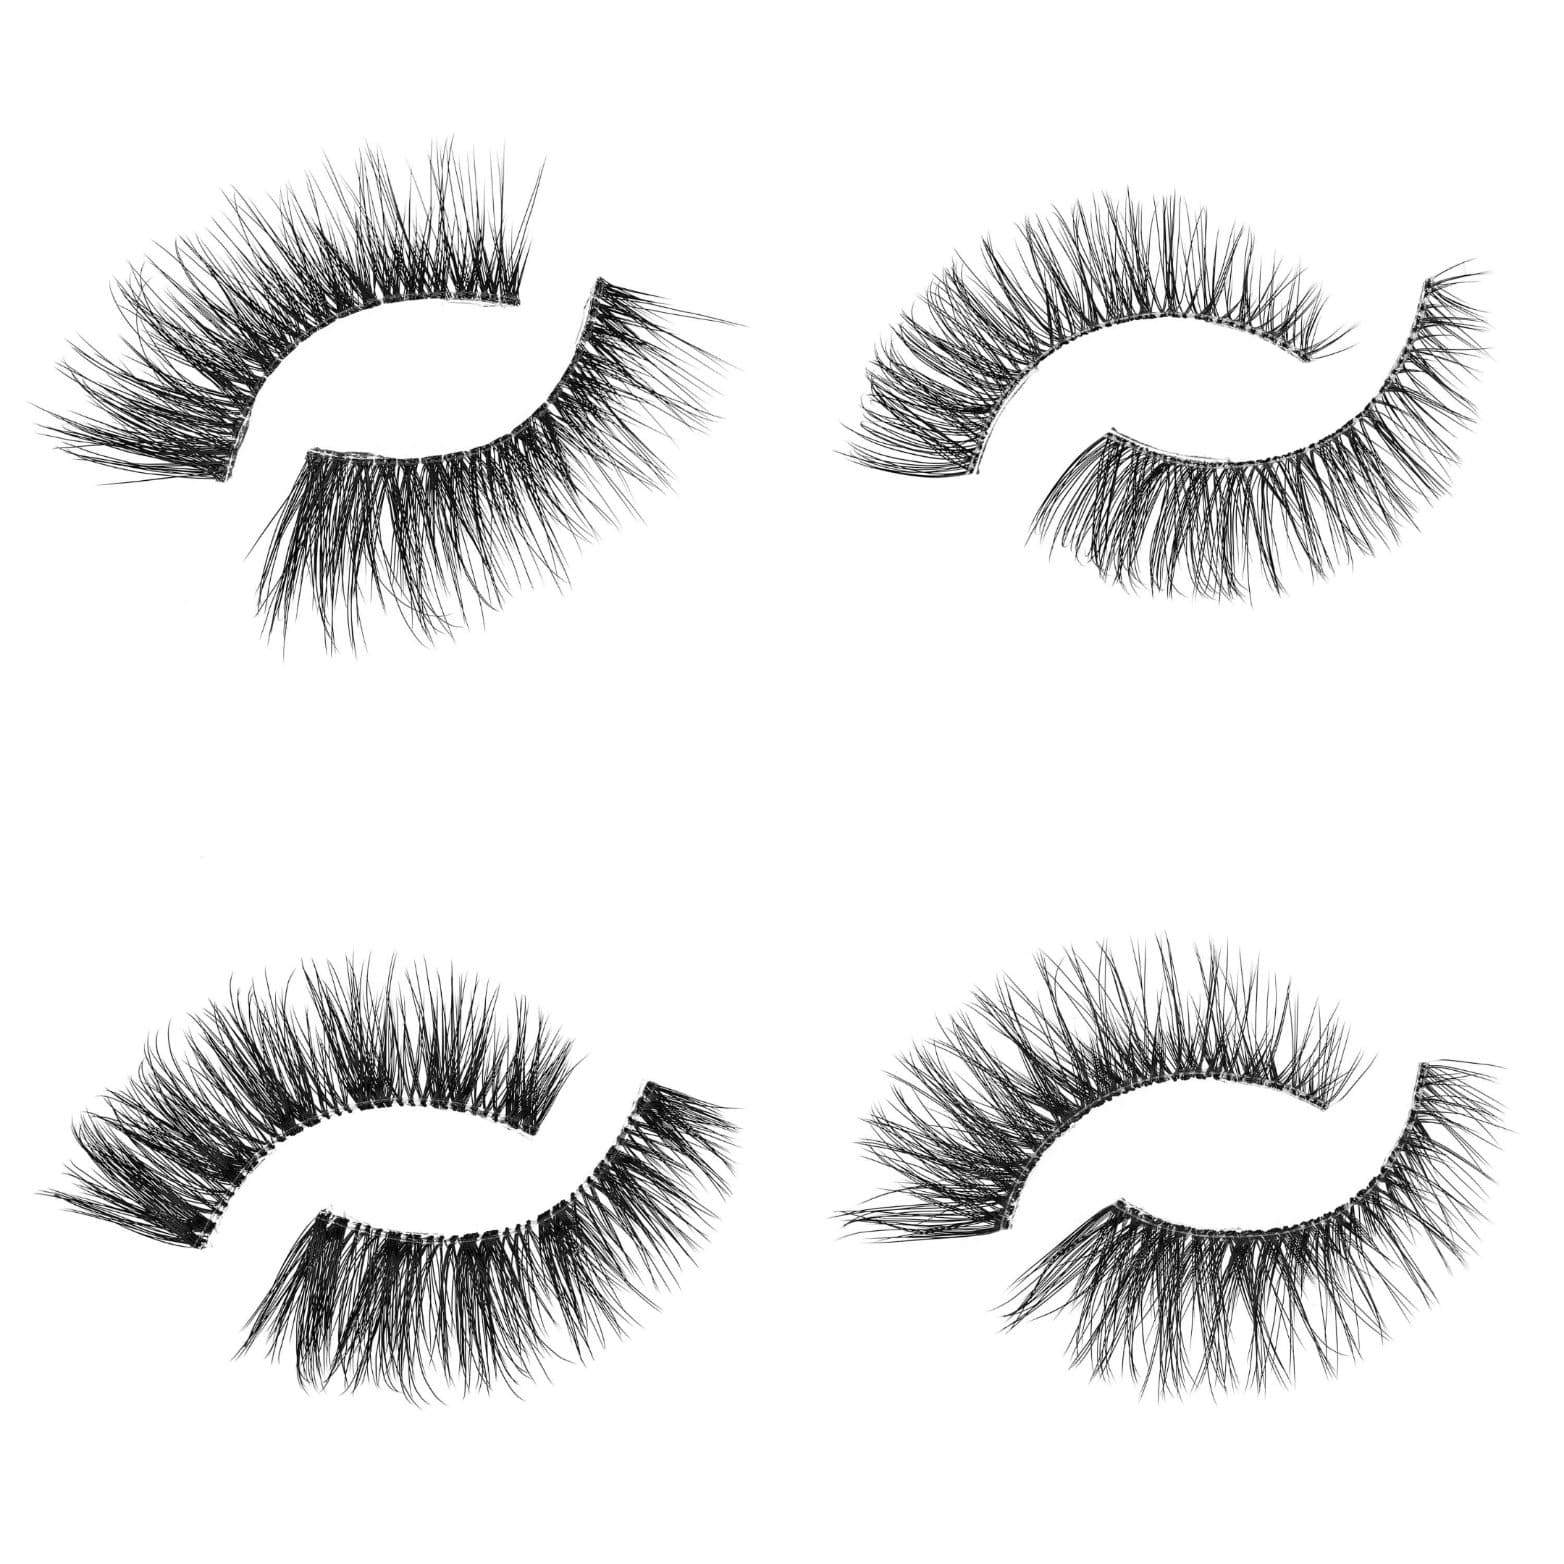 Lash Bundle Offer - The Lash Lover IV - Jolie Beauty